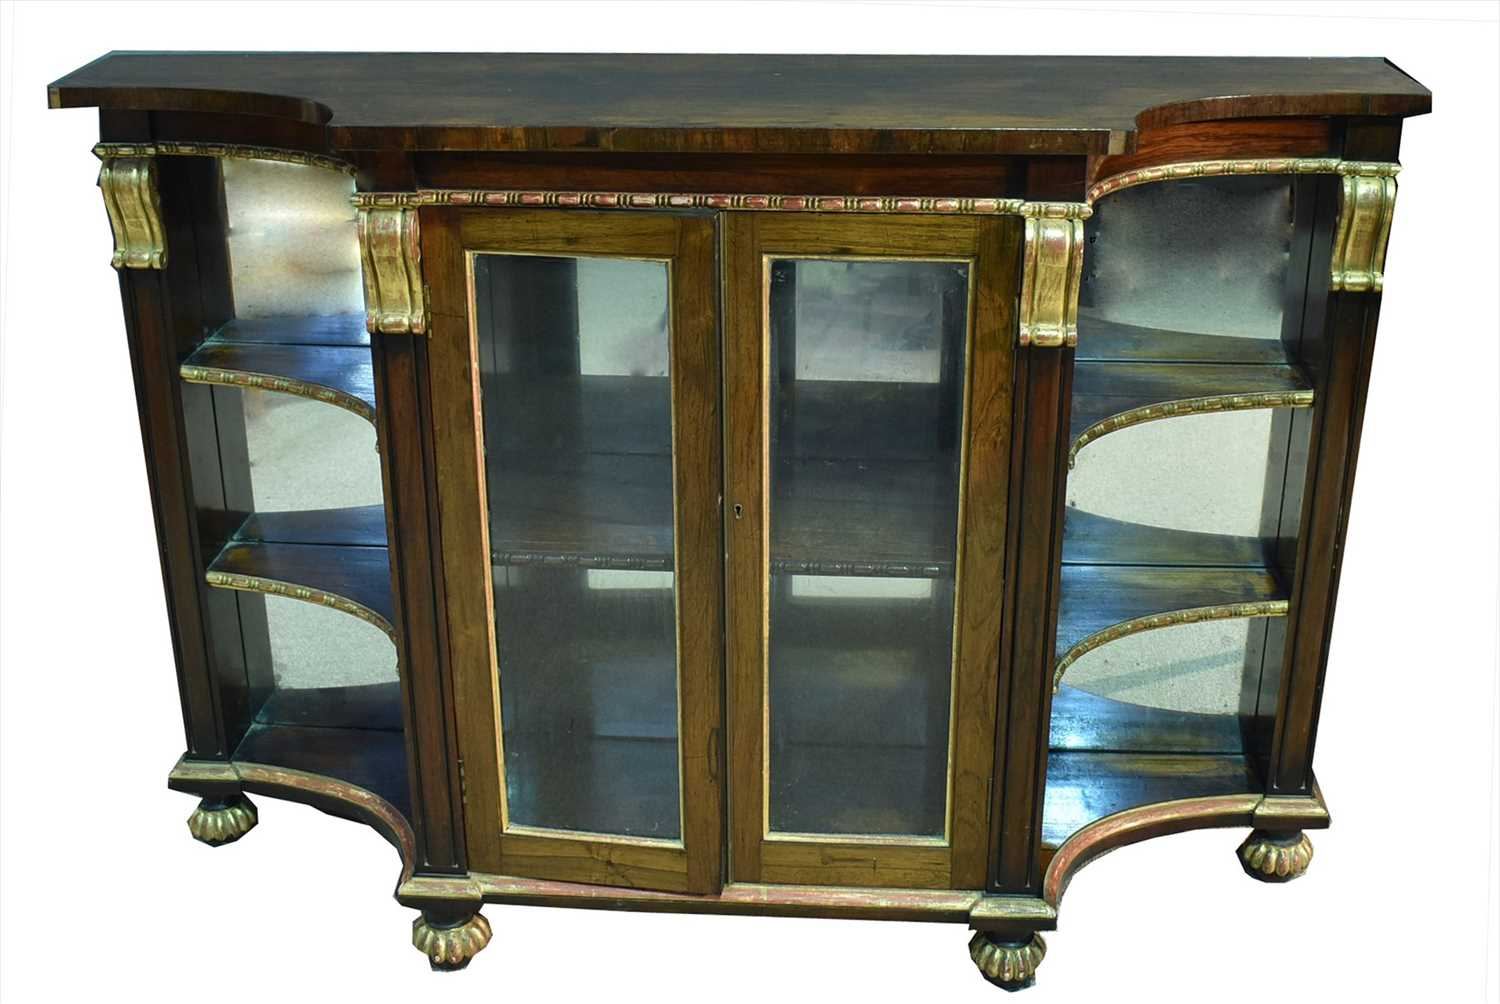 1179 - Mirror-back side cabinet.